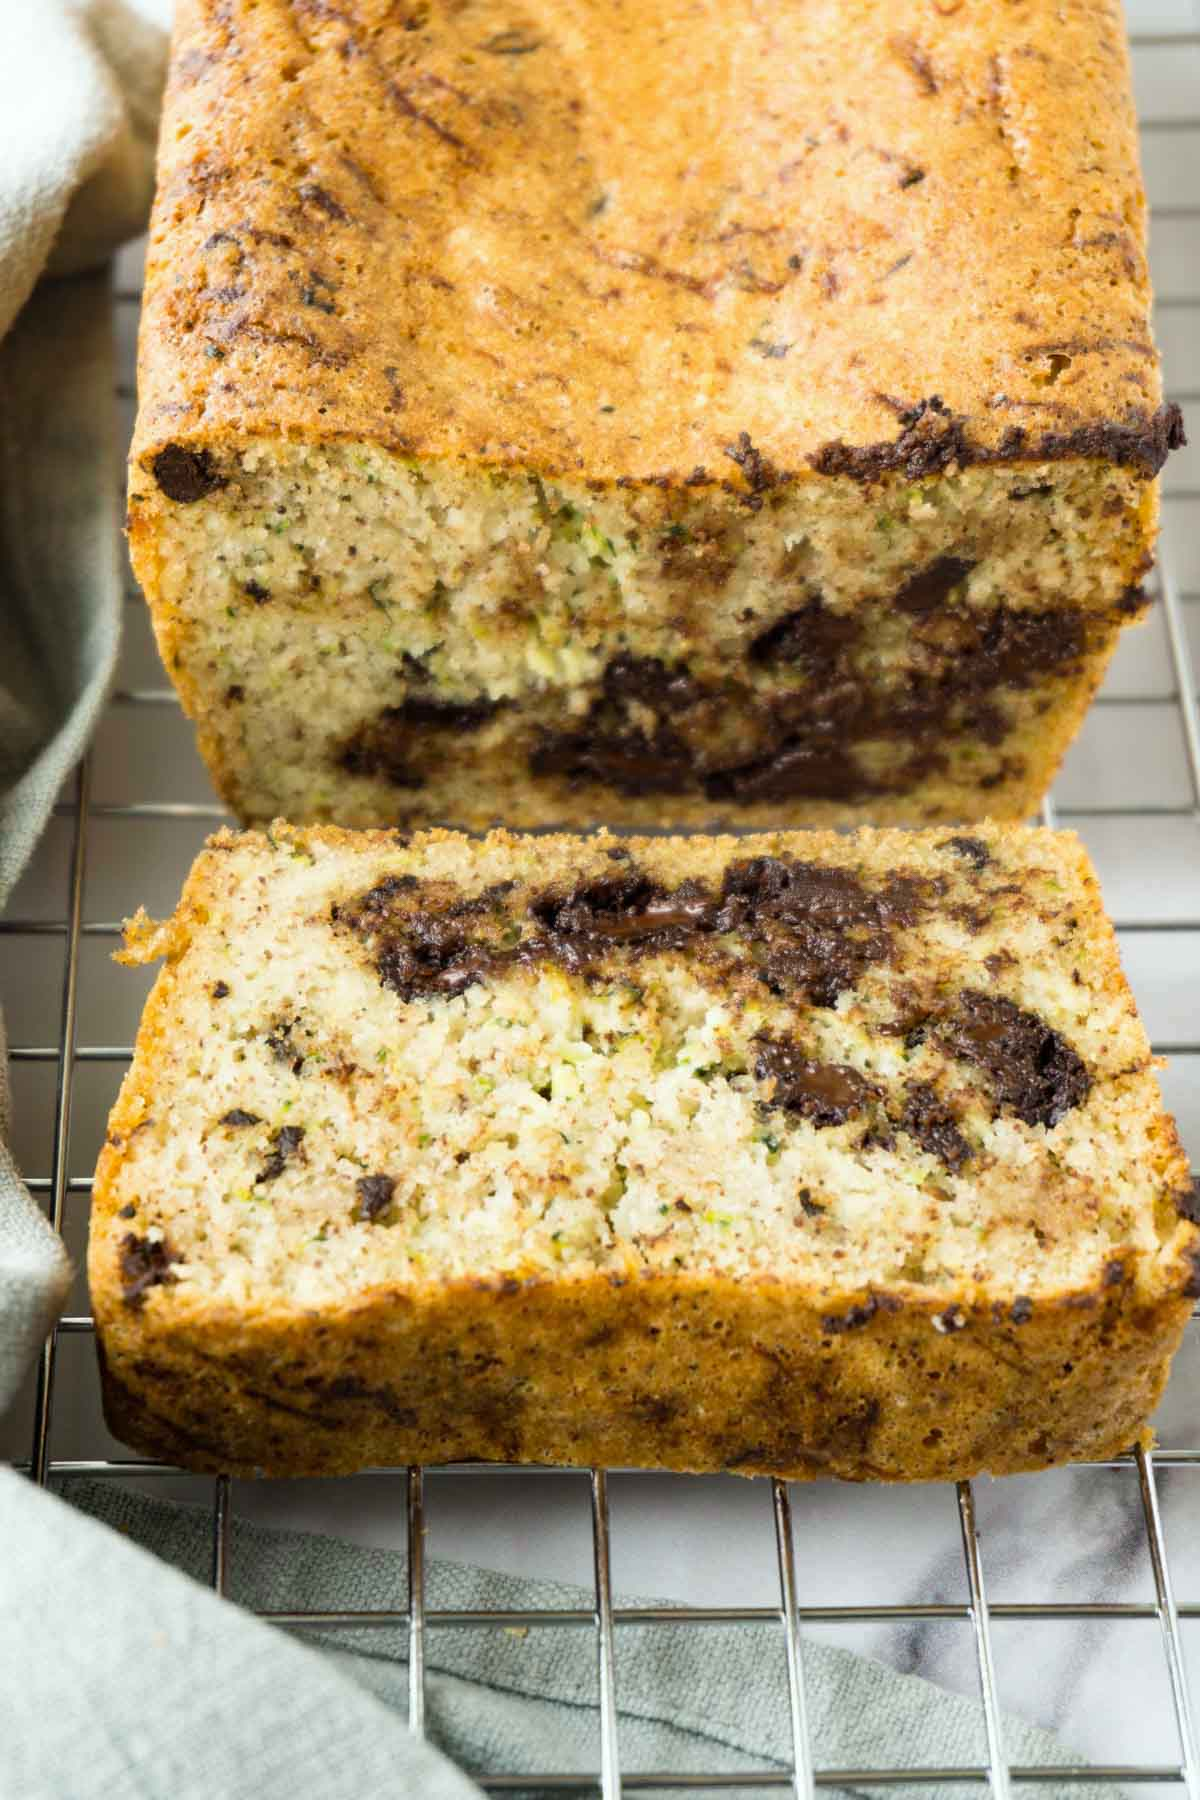 A partially sliced loaf bread with zucchini and chocolate chips on a cooling rack.